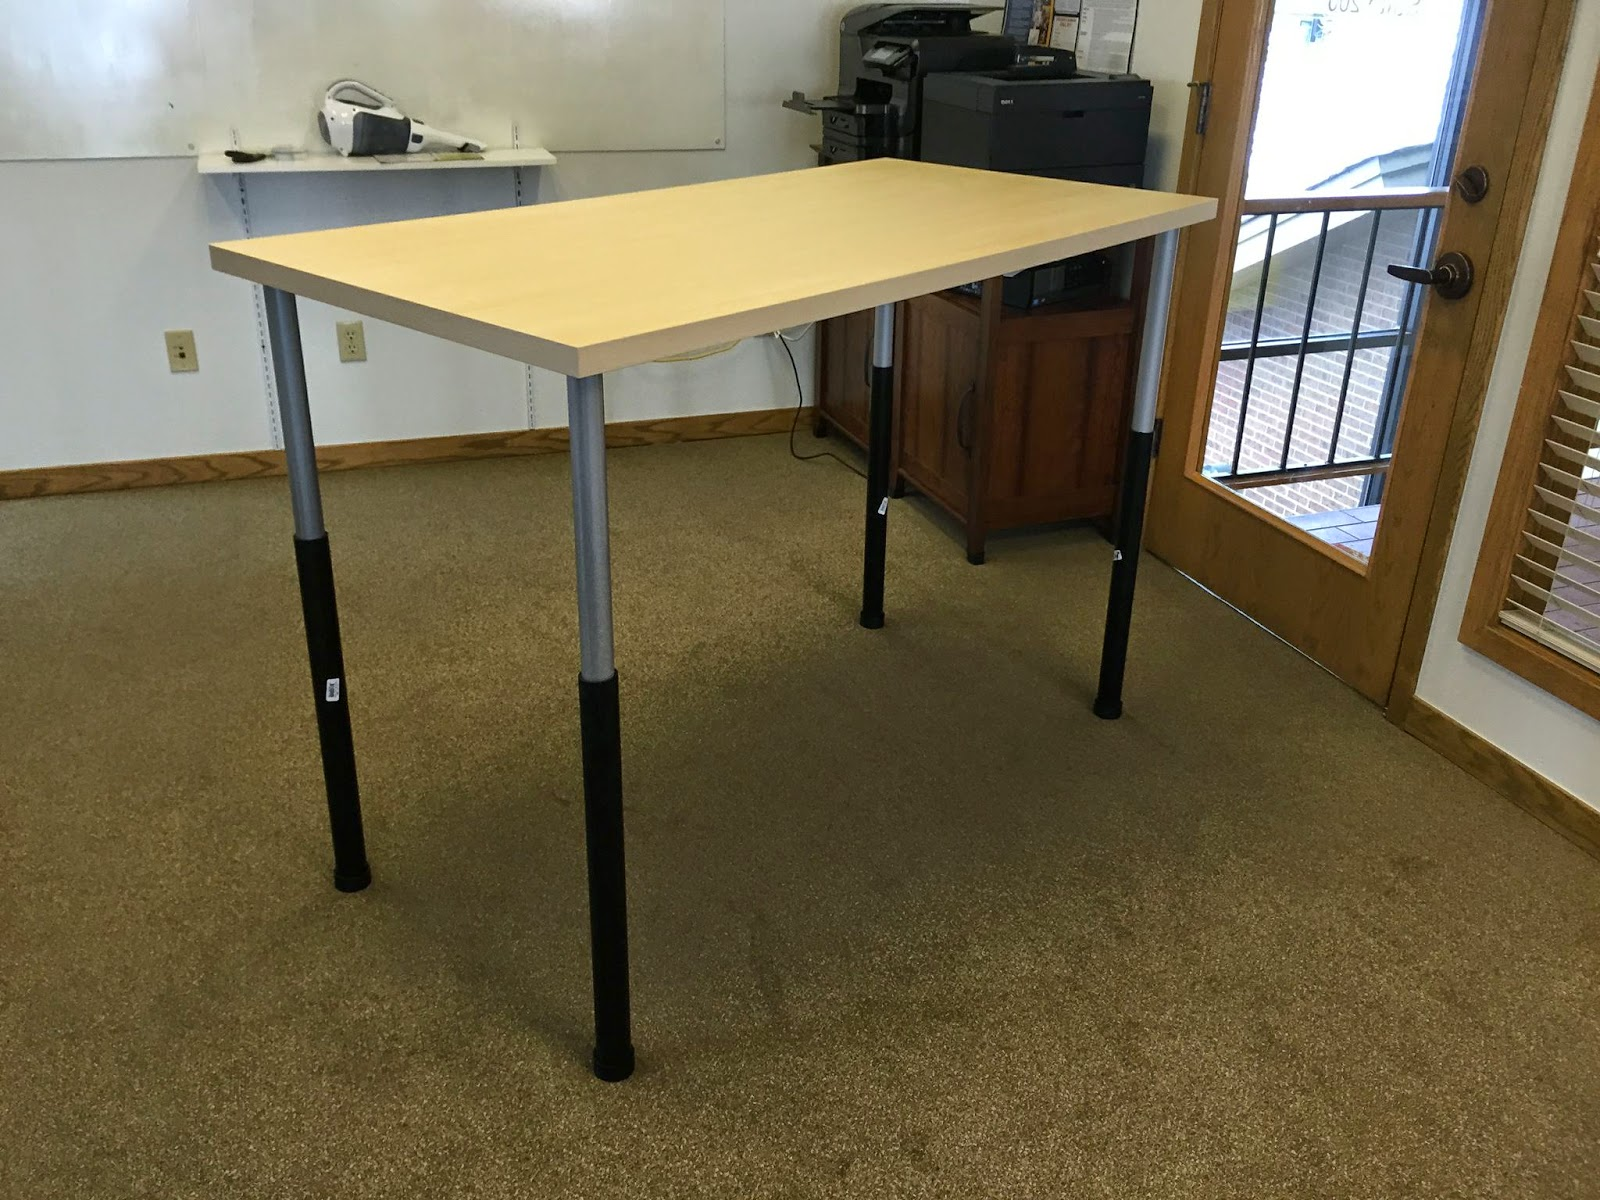 handmade fullxfull sizes il u desk table in metal listing basecoffee custom base s legs coffee legsmetal